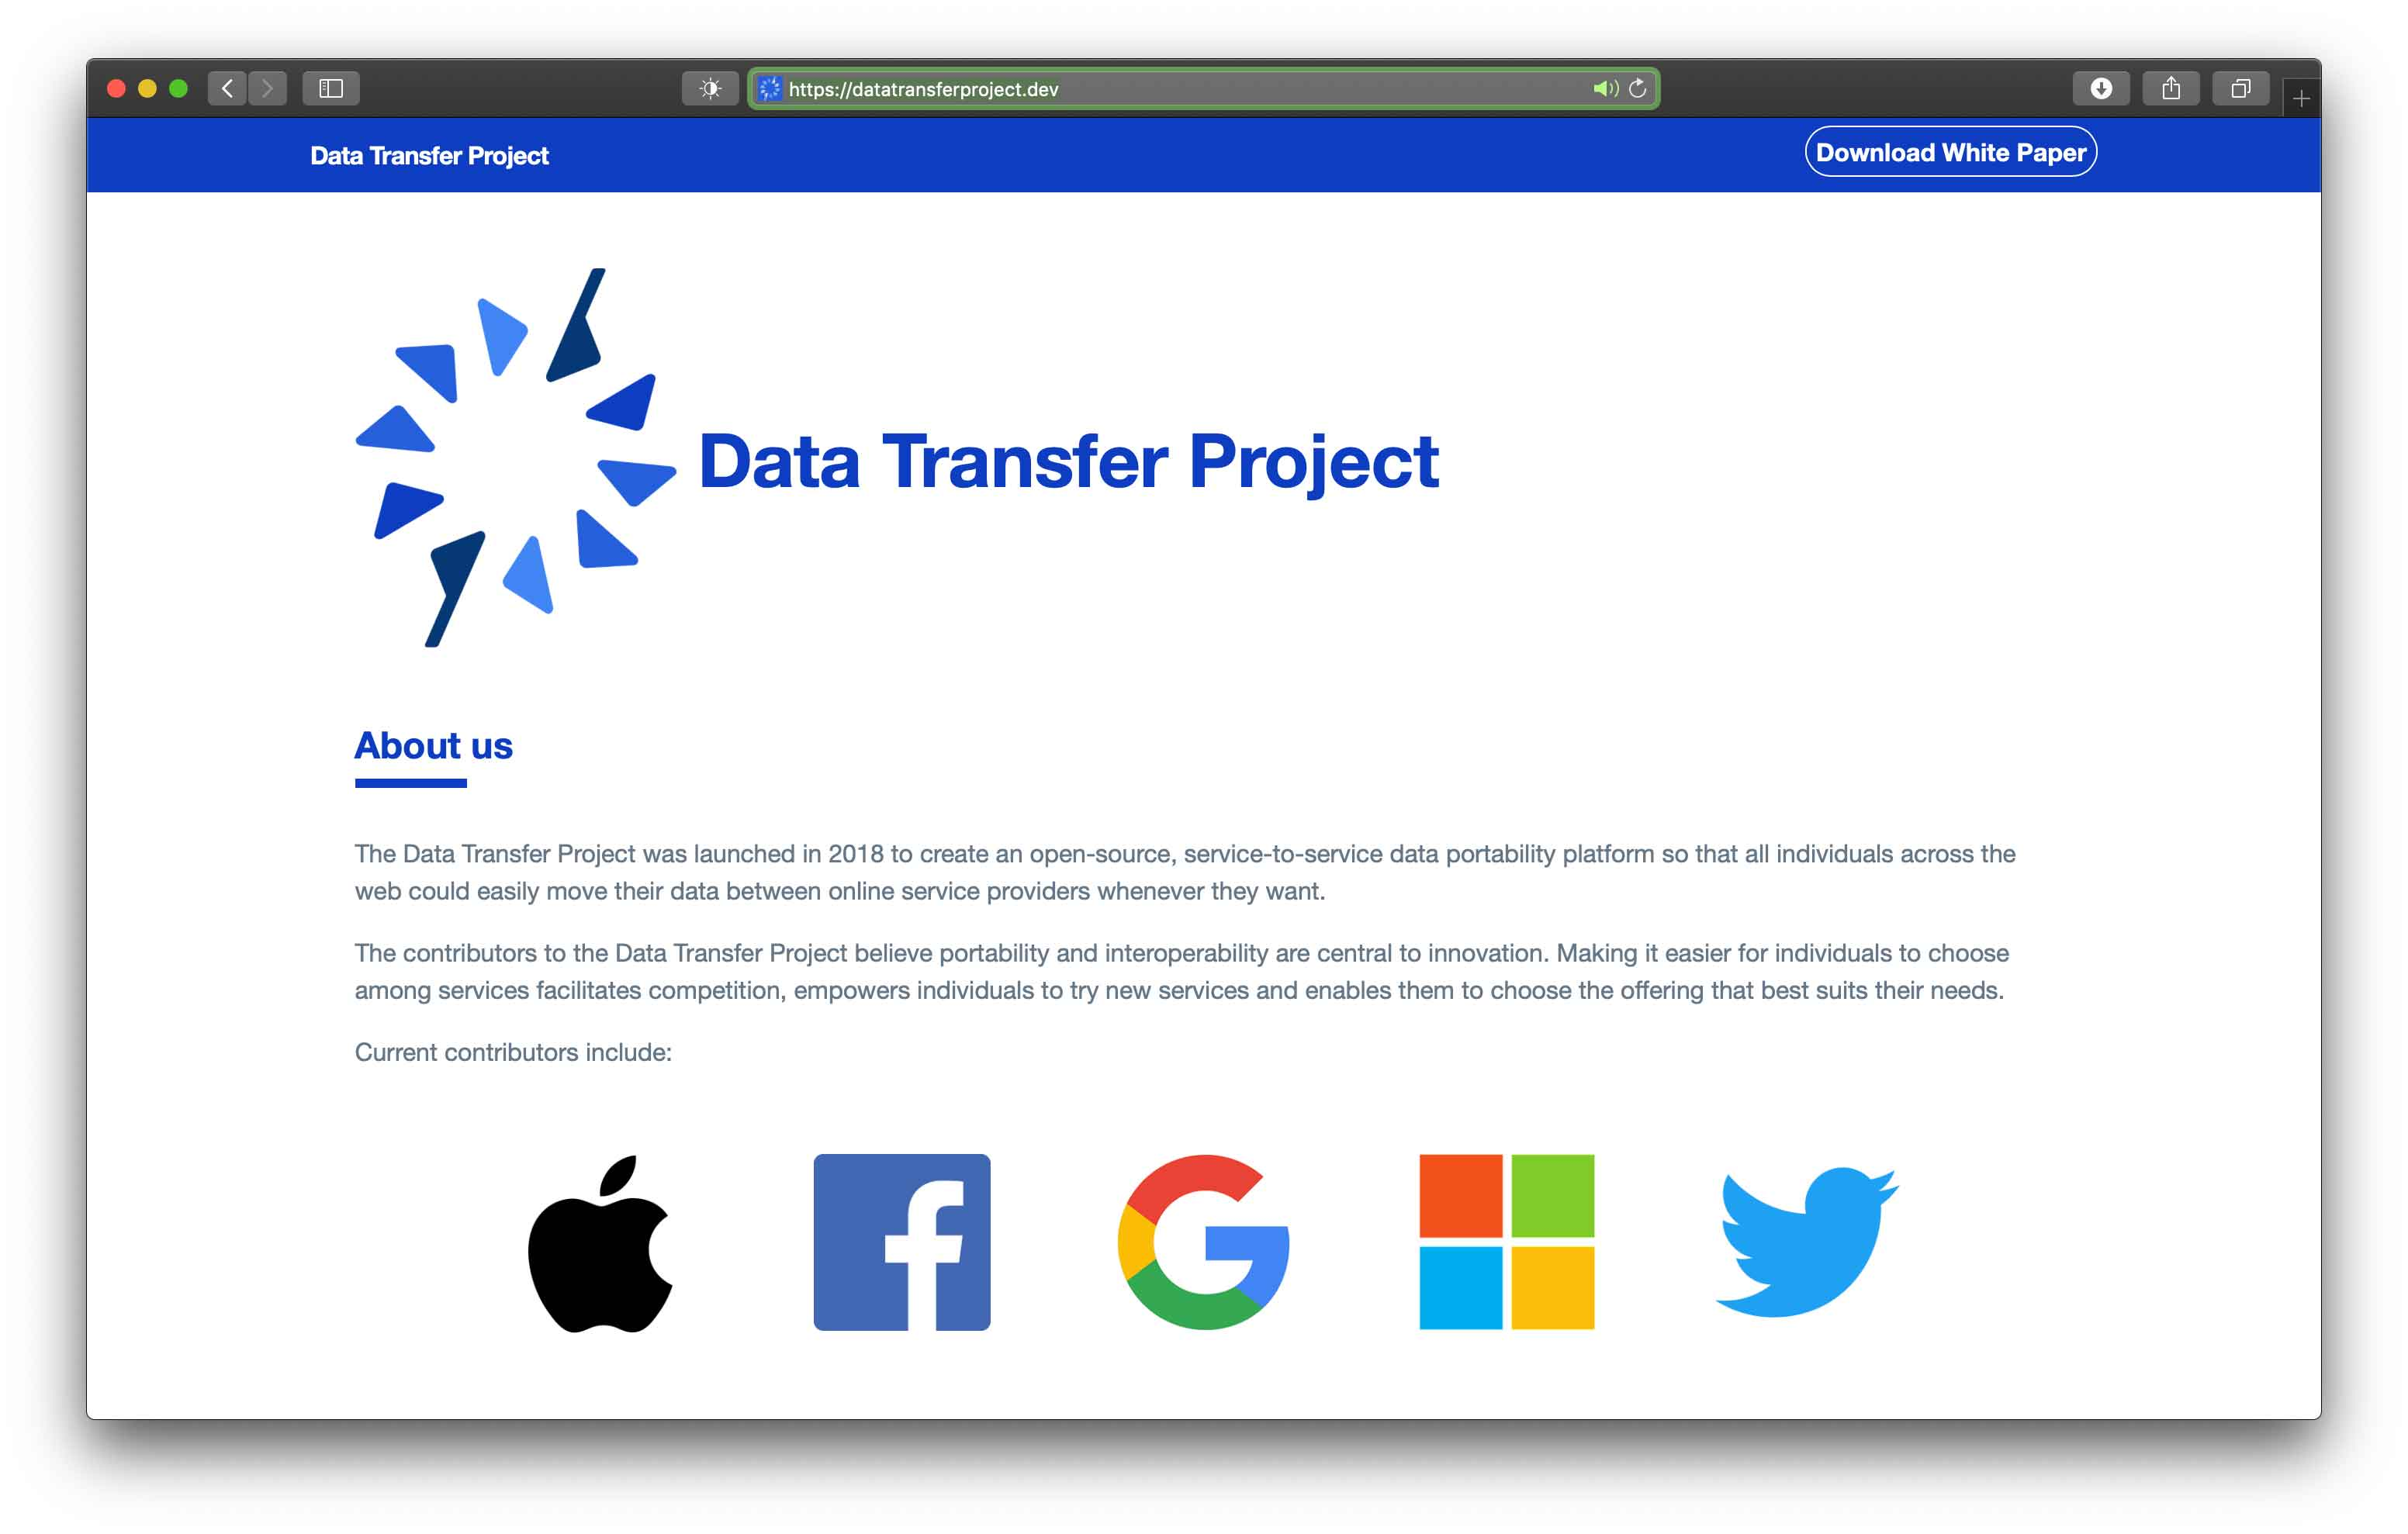 Apple aderisce al Data Transfer Project di Facebook, Google, Microsoft e Twitter